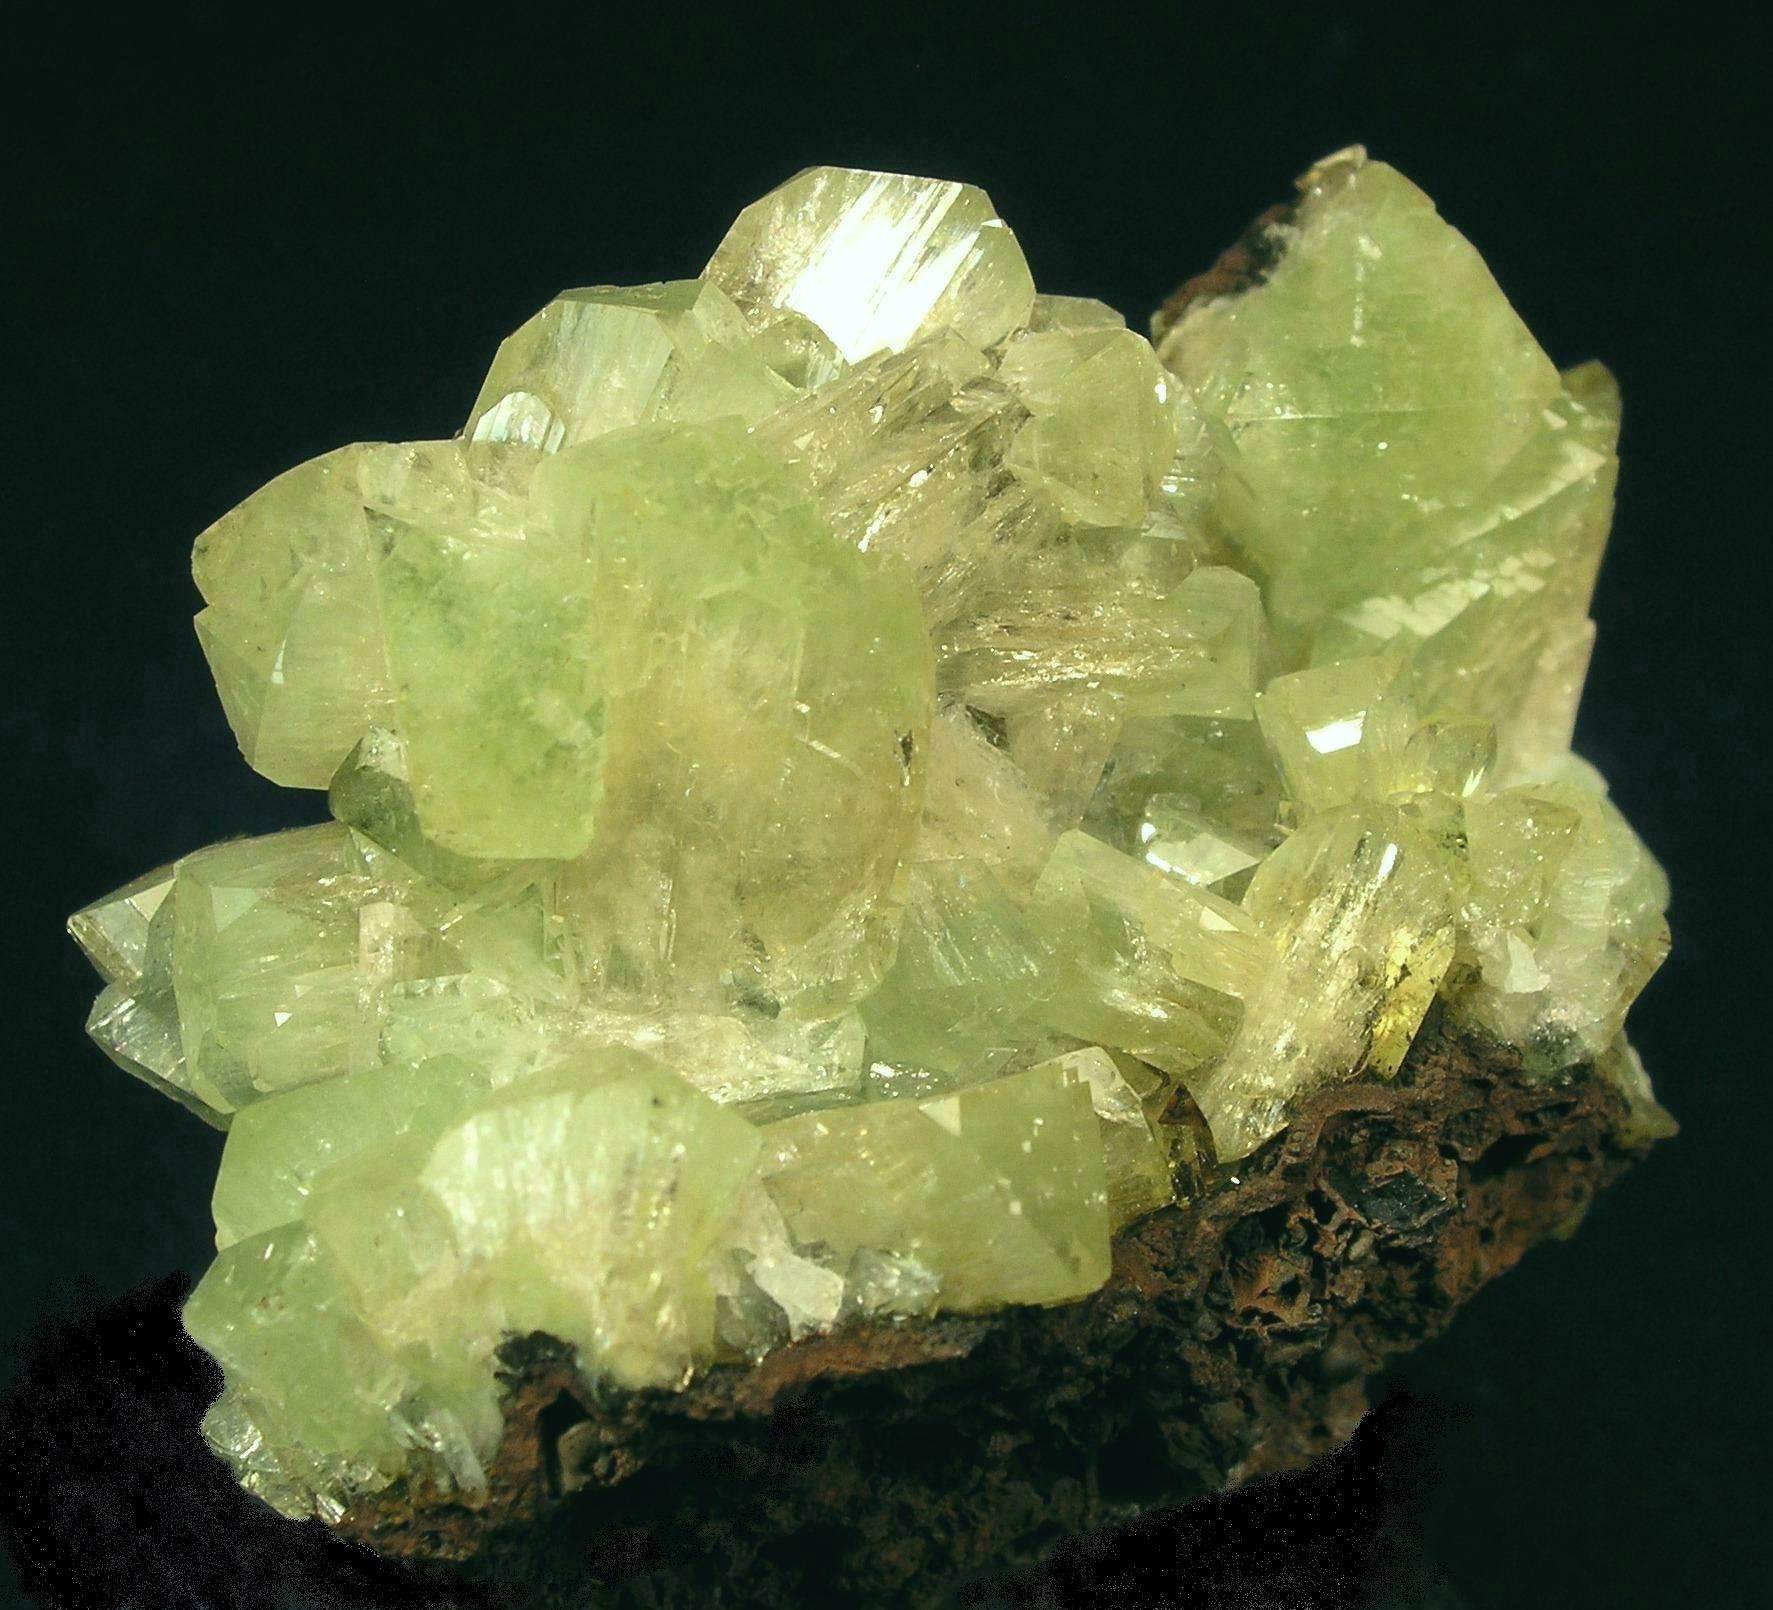 Superb specimen light mint green Cuprian Adamite crystals 1 cm size